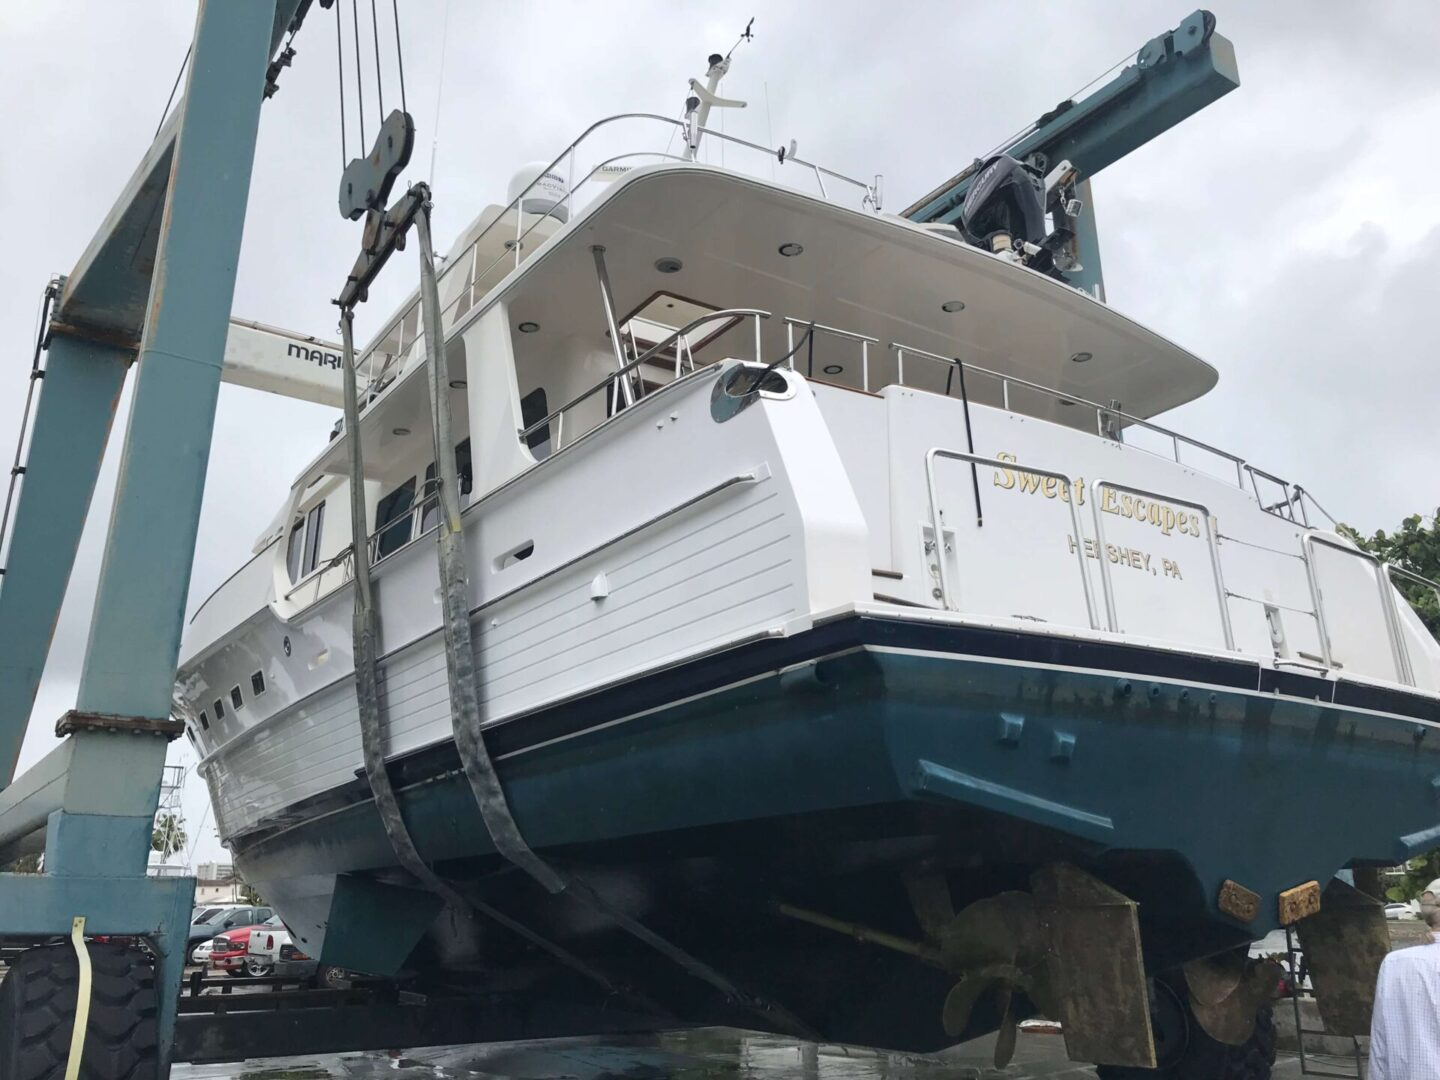 A Sweet Escapes yacht lifted up